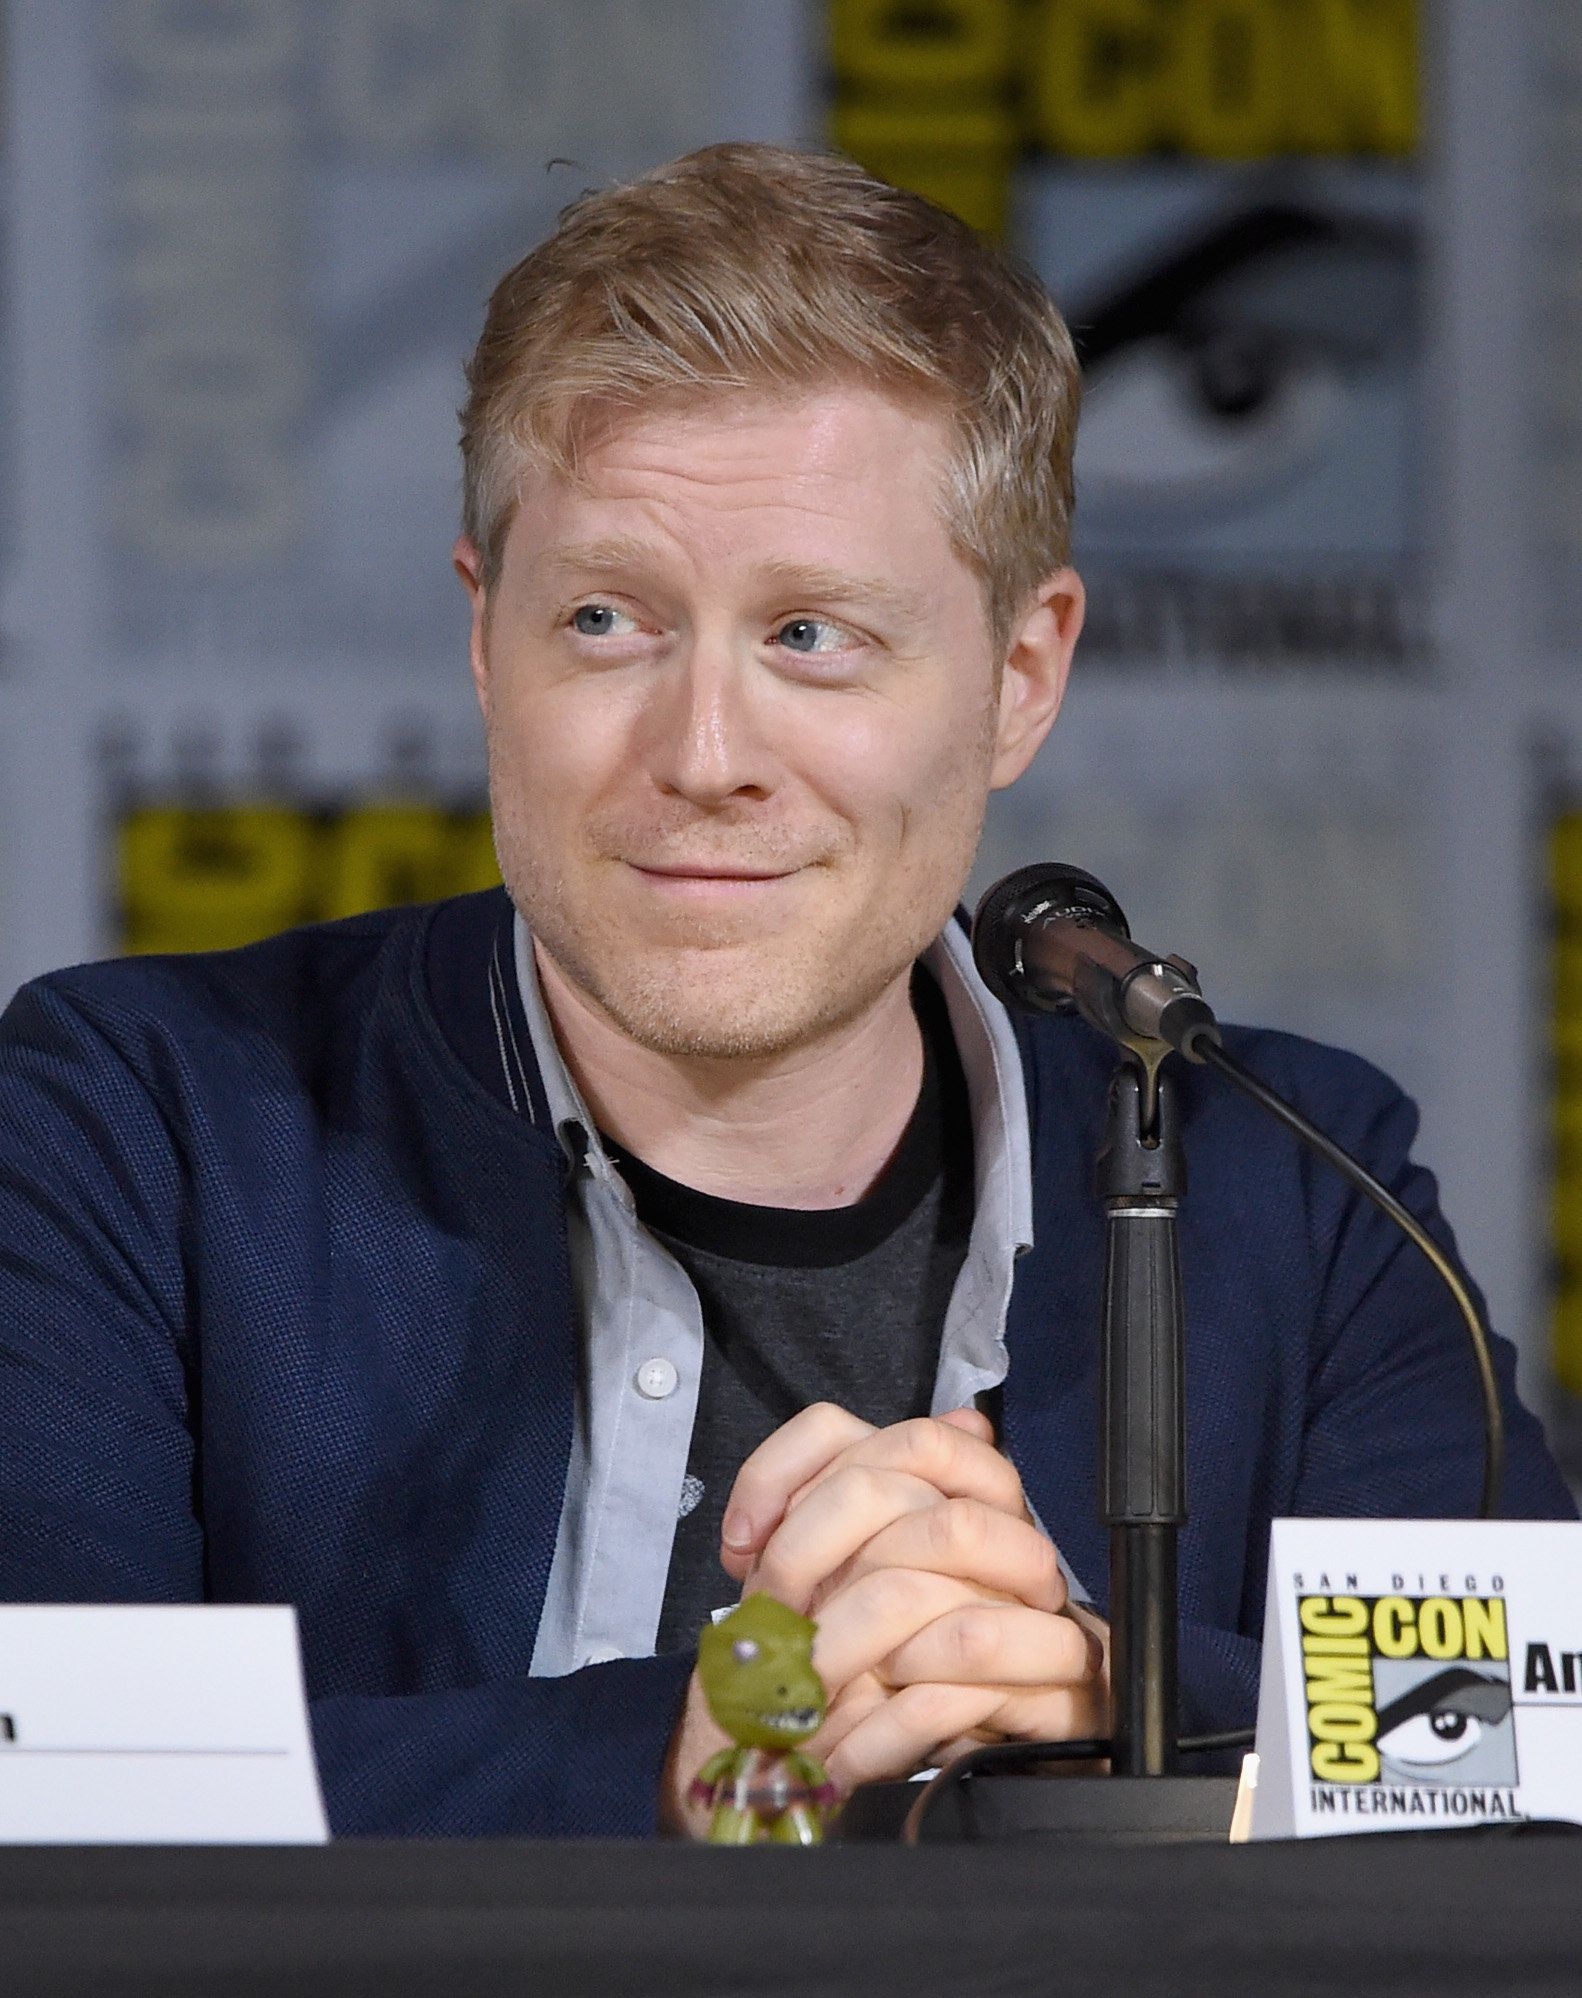 SAN DIEGO, CA - JULY 22:  Anthony Rapp attends 'Star Trek: Discovery' panel during Comic-Con International 2017 at San Diego Convention Center on July 22, 2017 in San Diego, California.  (Photo by Mike Coppola/Getty Images)